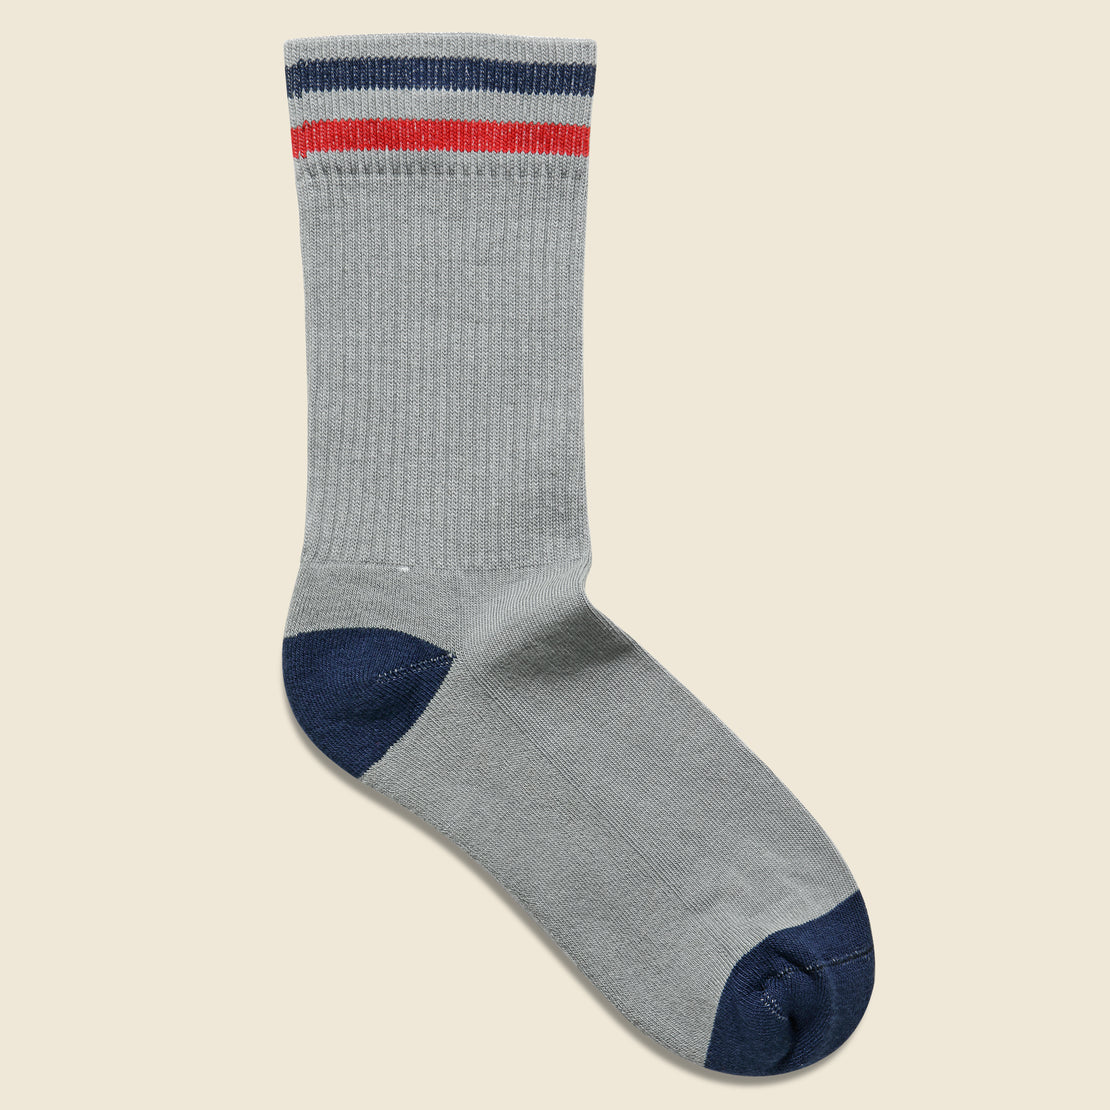 American Trench Kennedy Athletic Crew Sock - Grey/Navy/Red